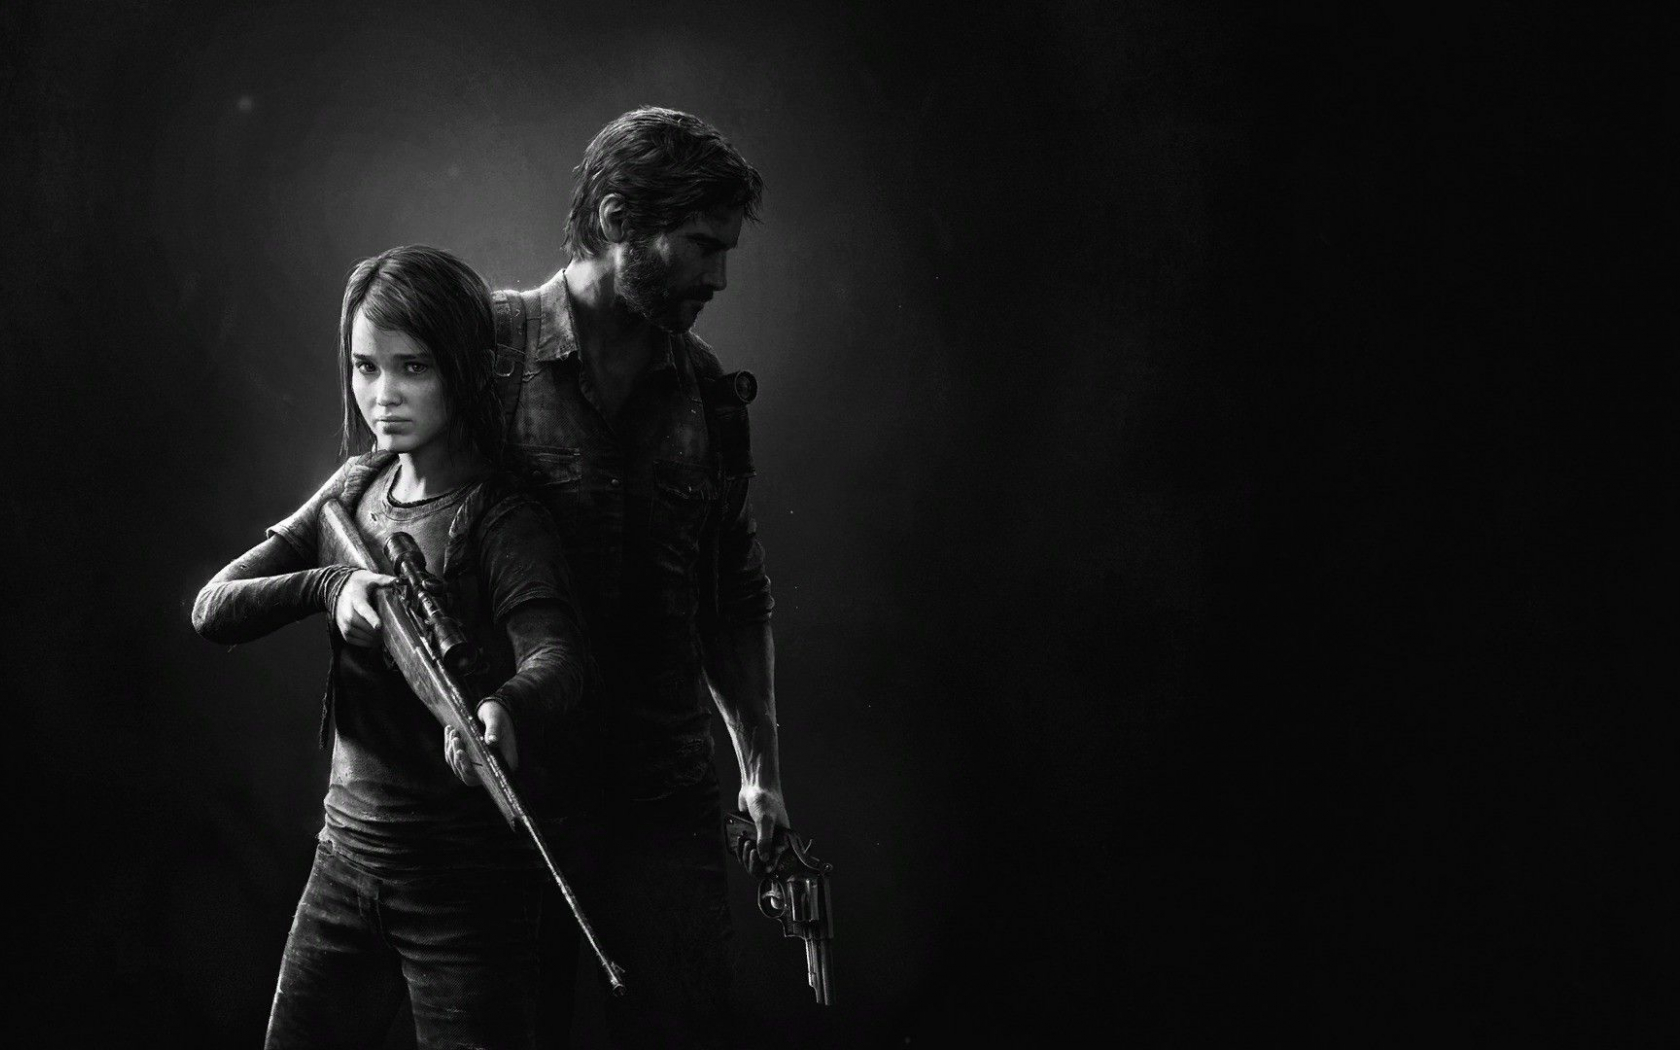 Free Download Iphone Sc Wallpaper The Last Of Us The Last Of Us